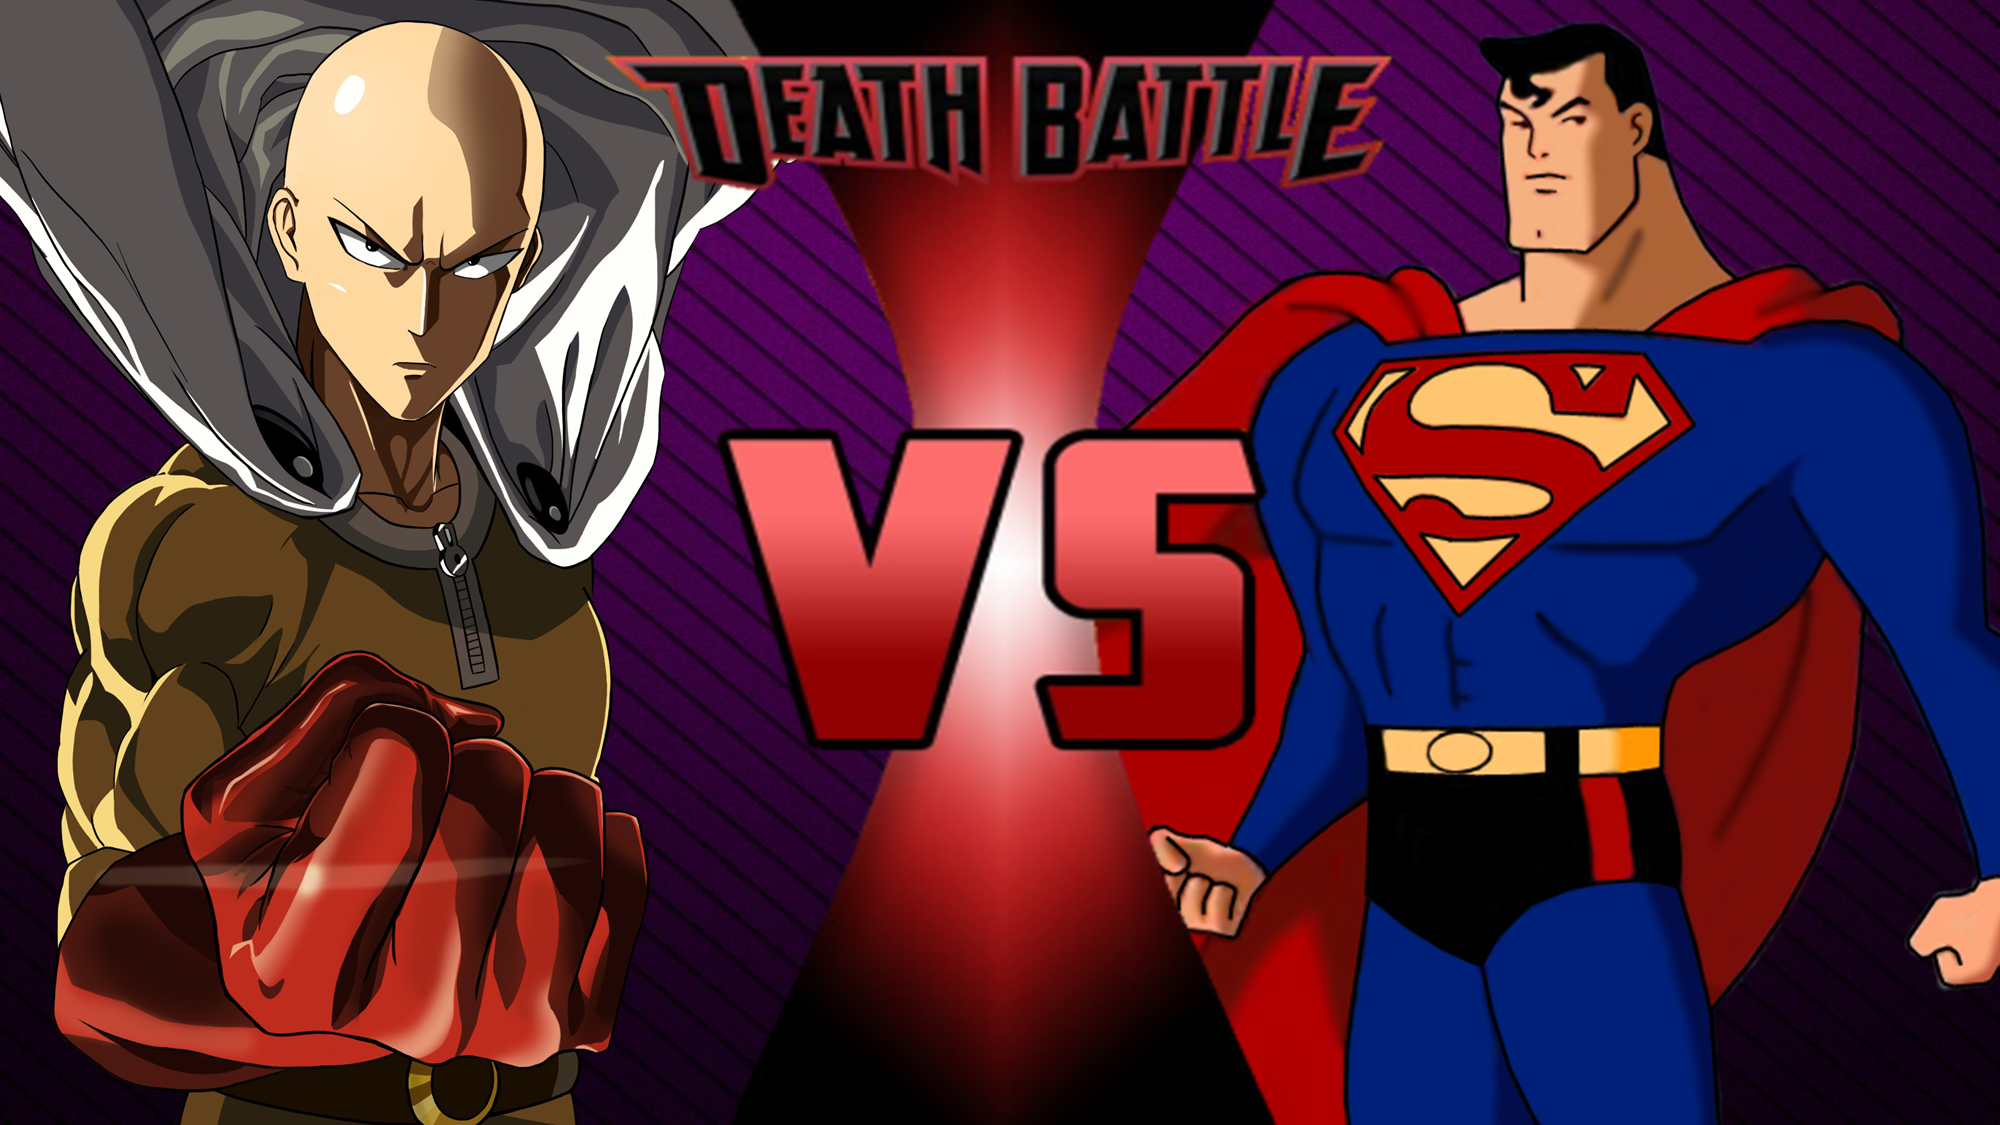 Saitama One Punch Man Vs Superman 3